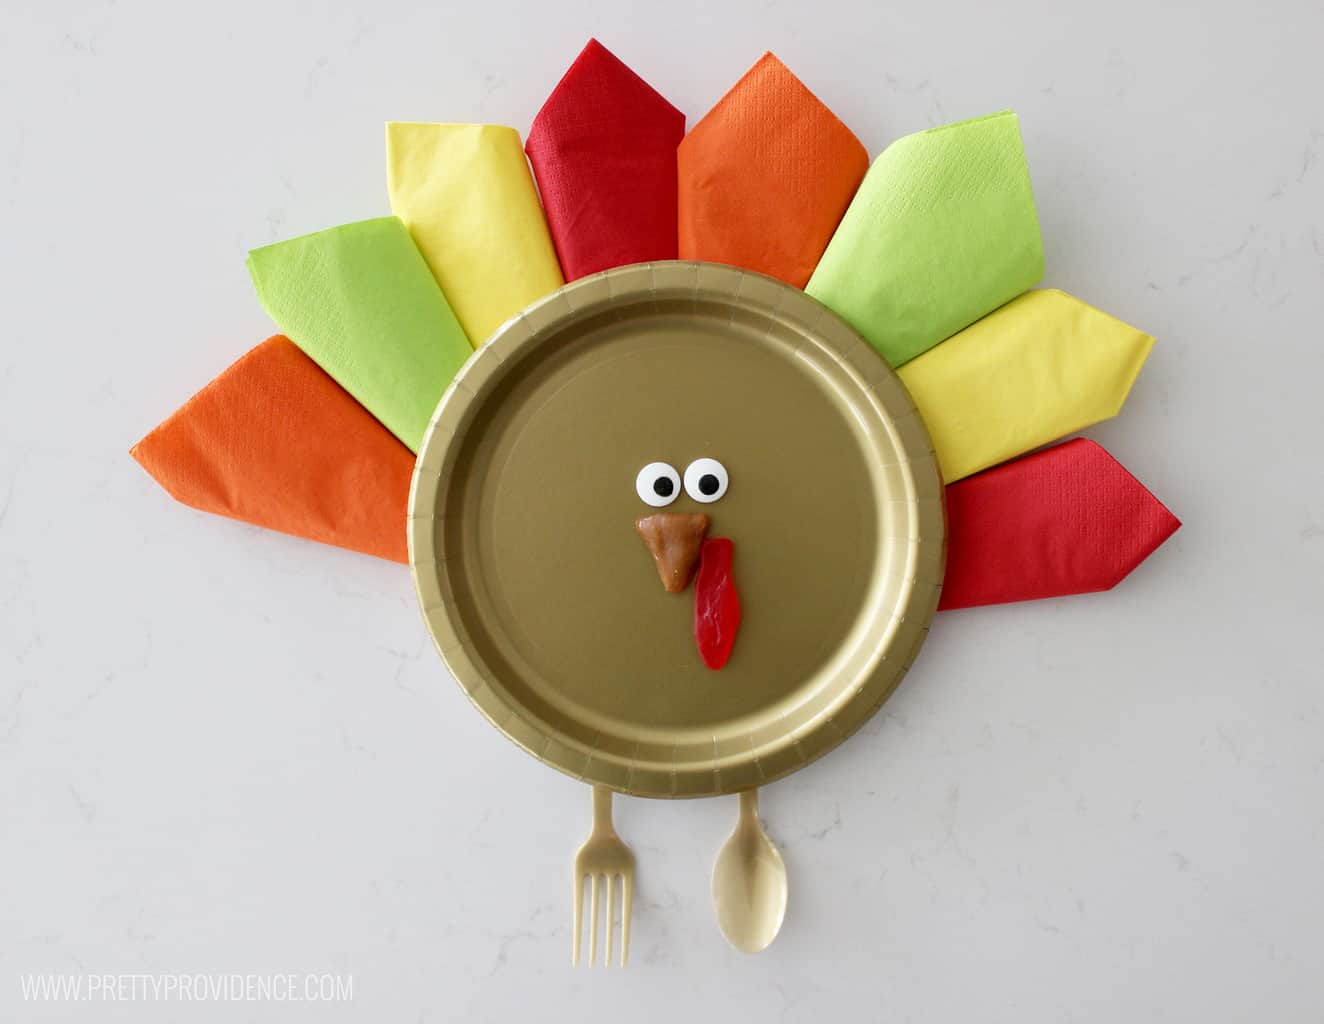 How cute is this kids Thanksgiving turkey place setting?! Such a fun and festive way to make the kids table special!